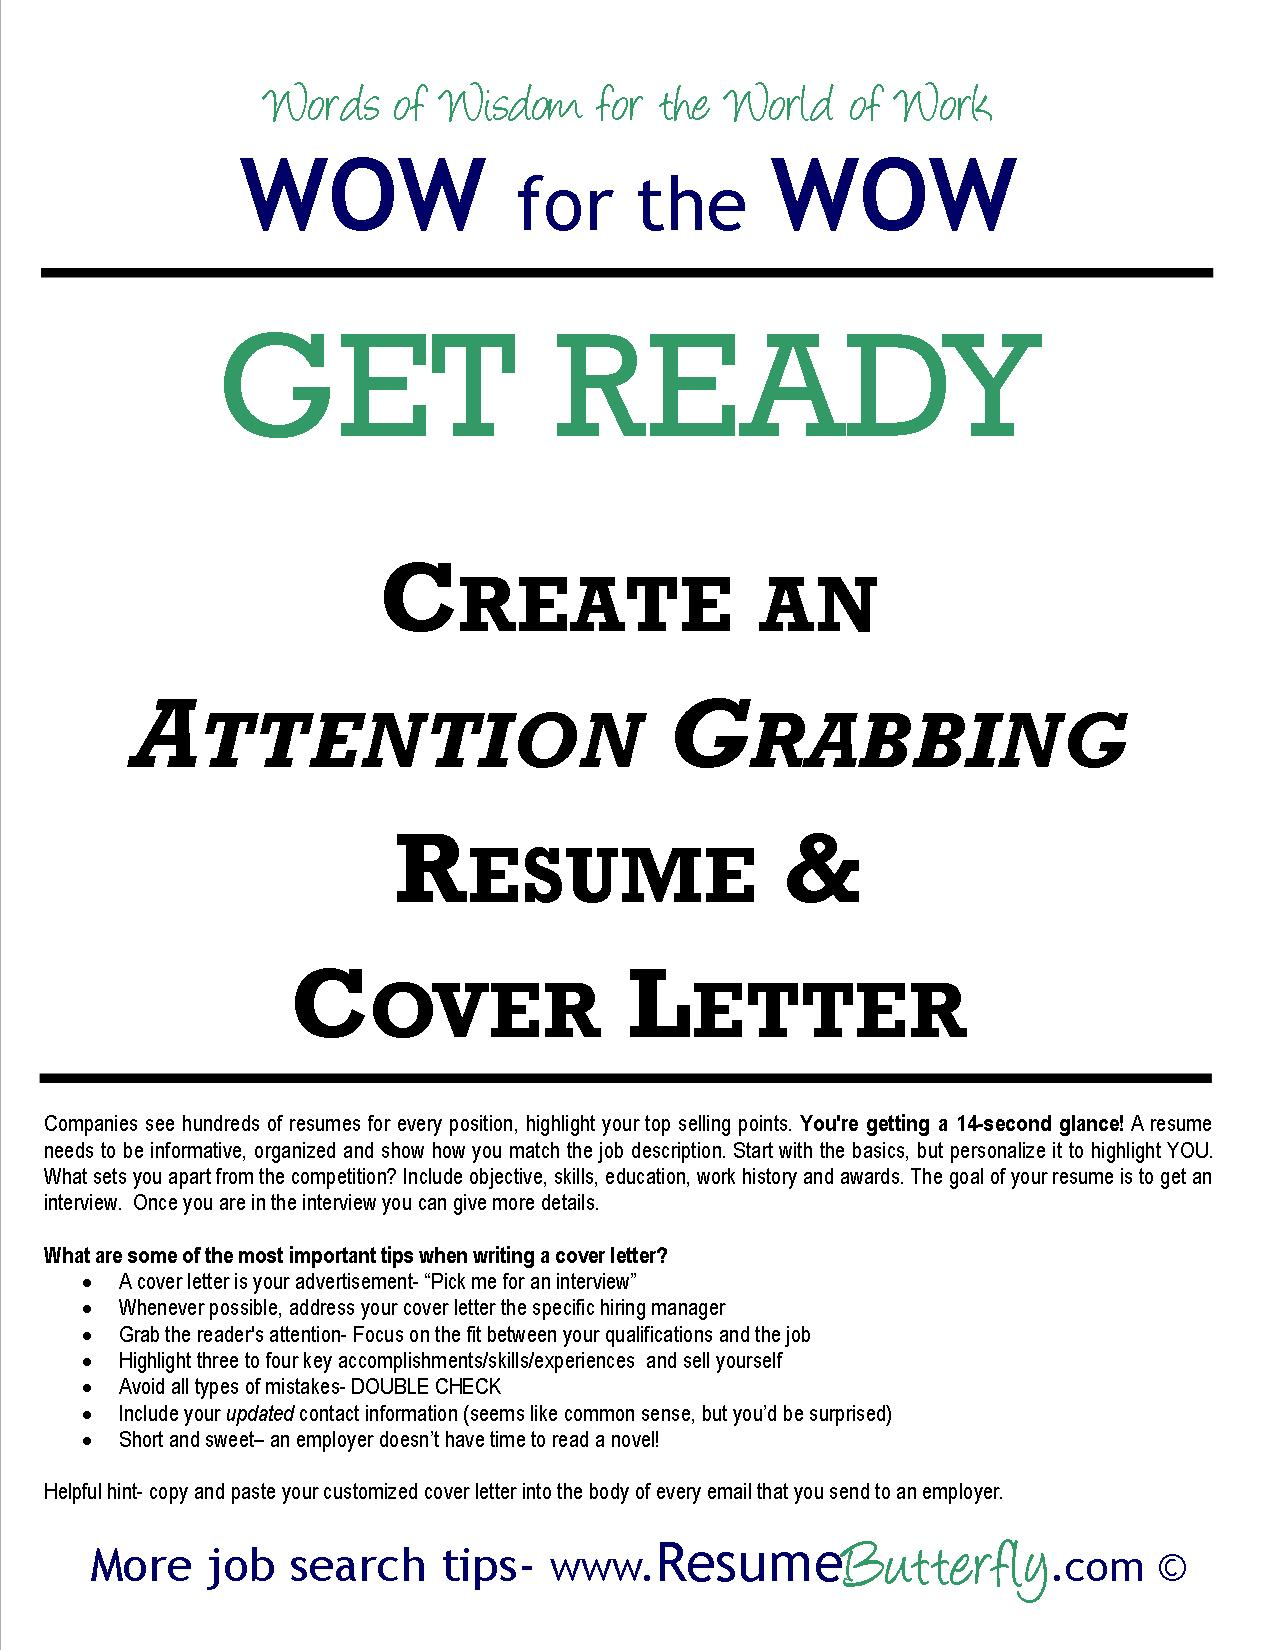 How To Email Your Cover Letter Pongo Blog Intended For Cover Letter In Email  Body  How To Email A Cover Letter And Resume